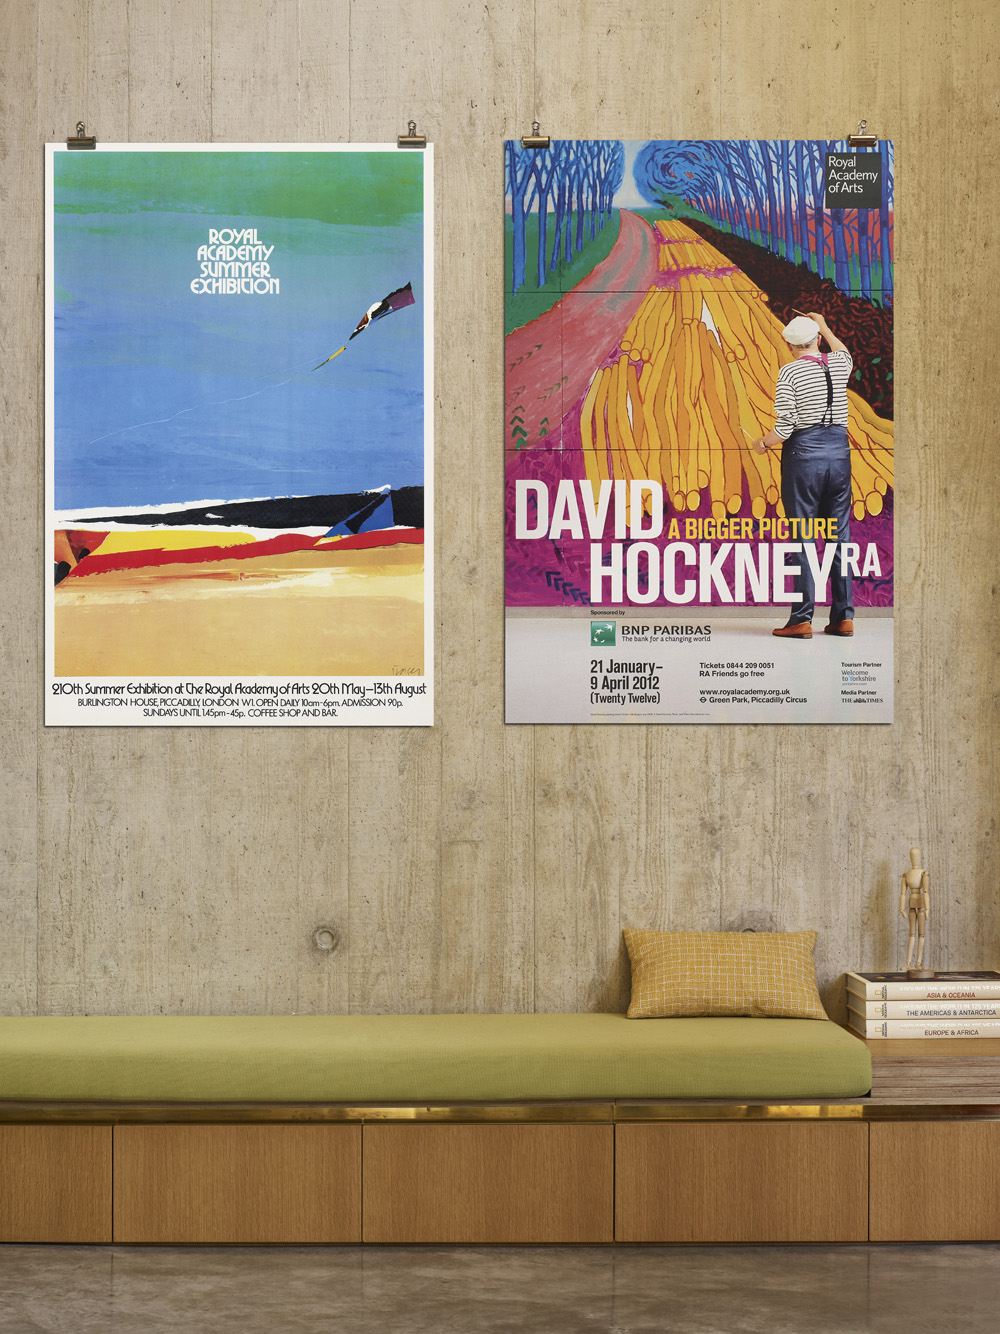 Above: RA Summer Exhibition 1978 and RA David Hockney Exhibition 2012 Epic Posters